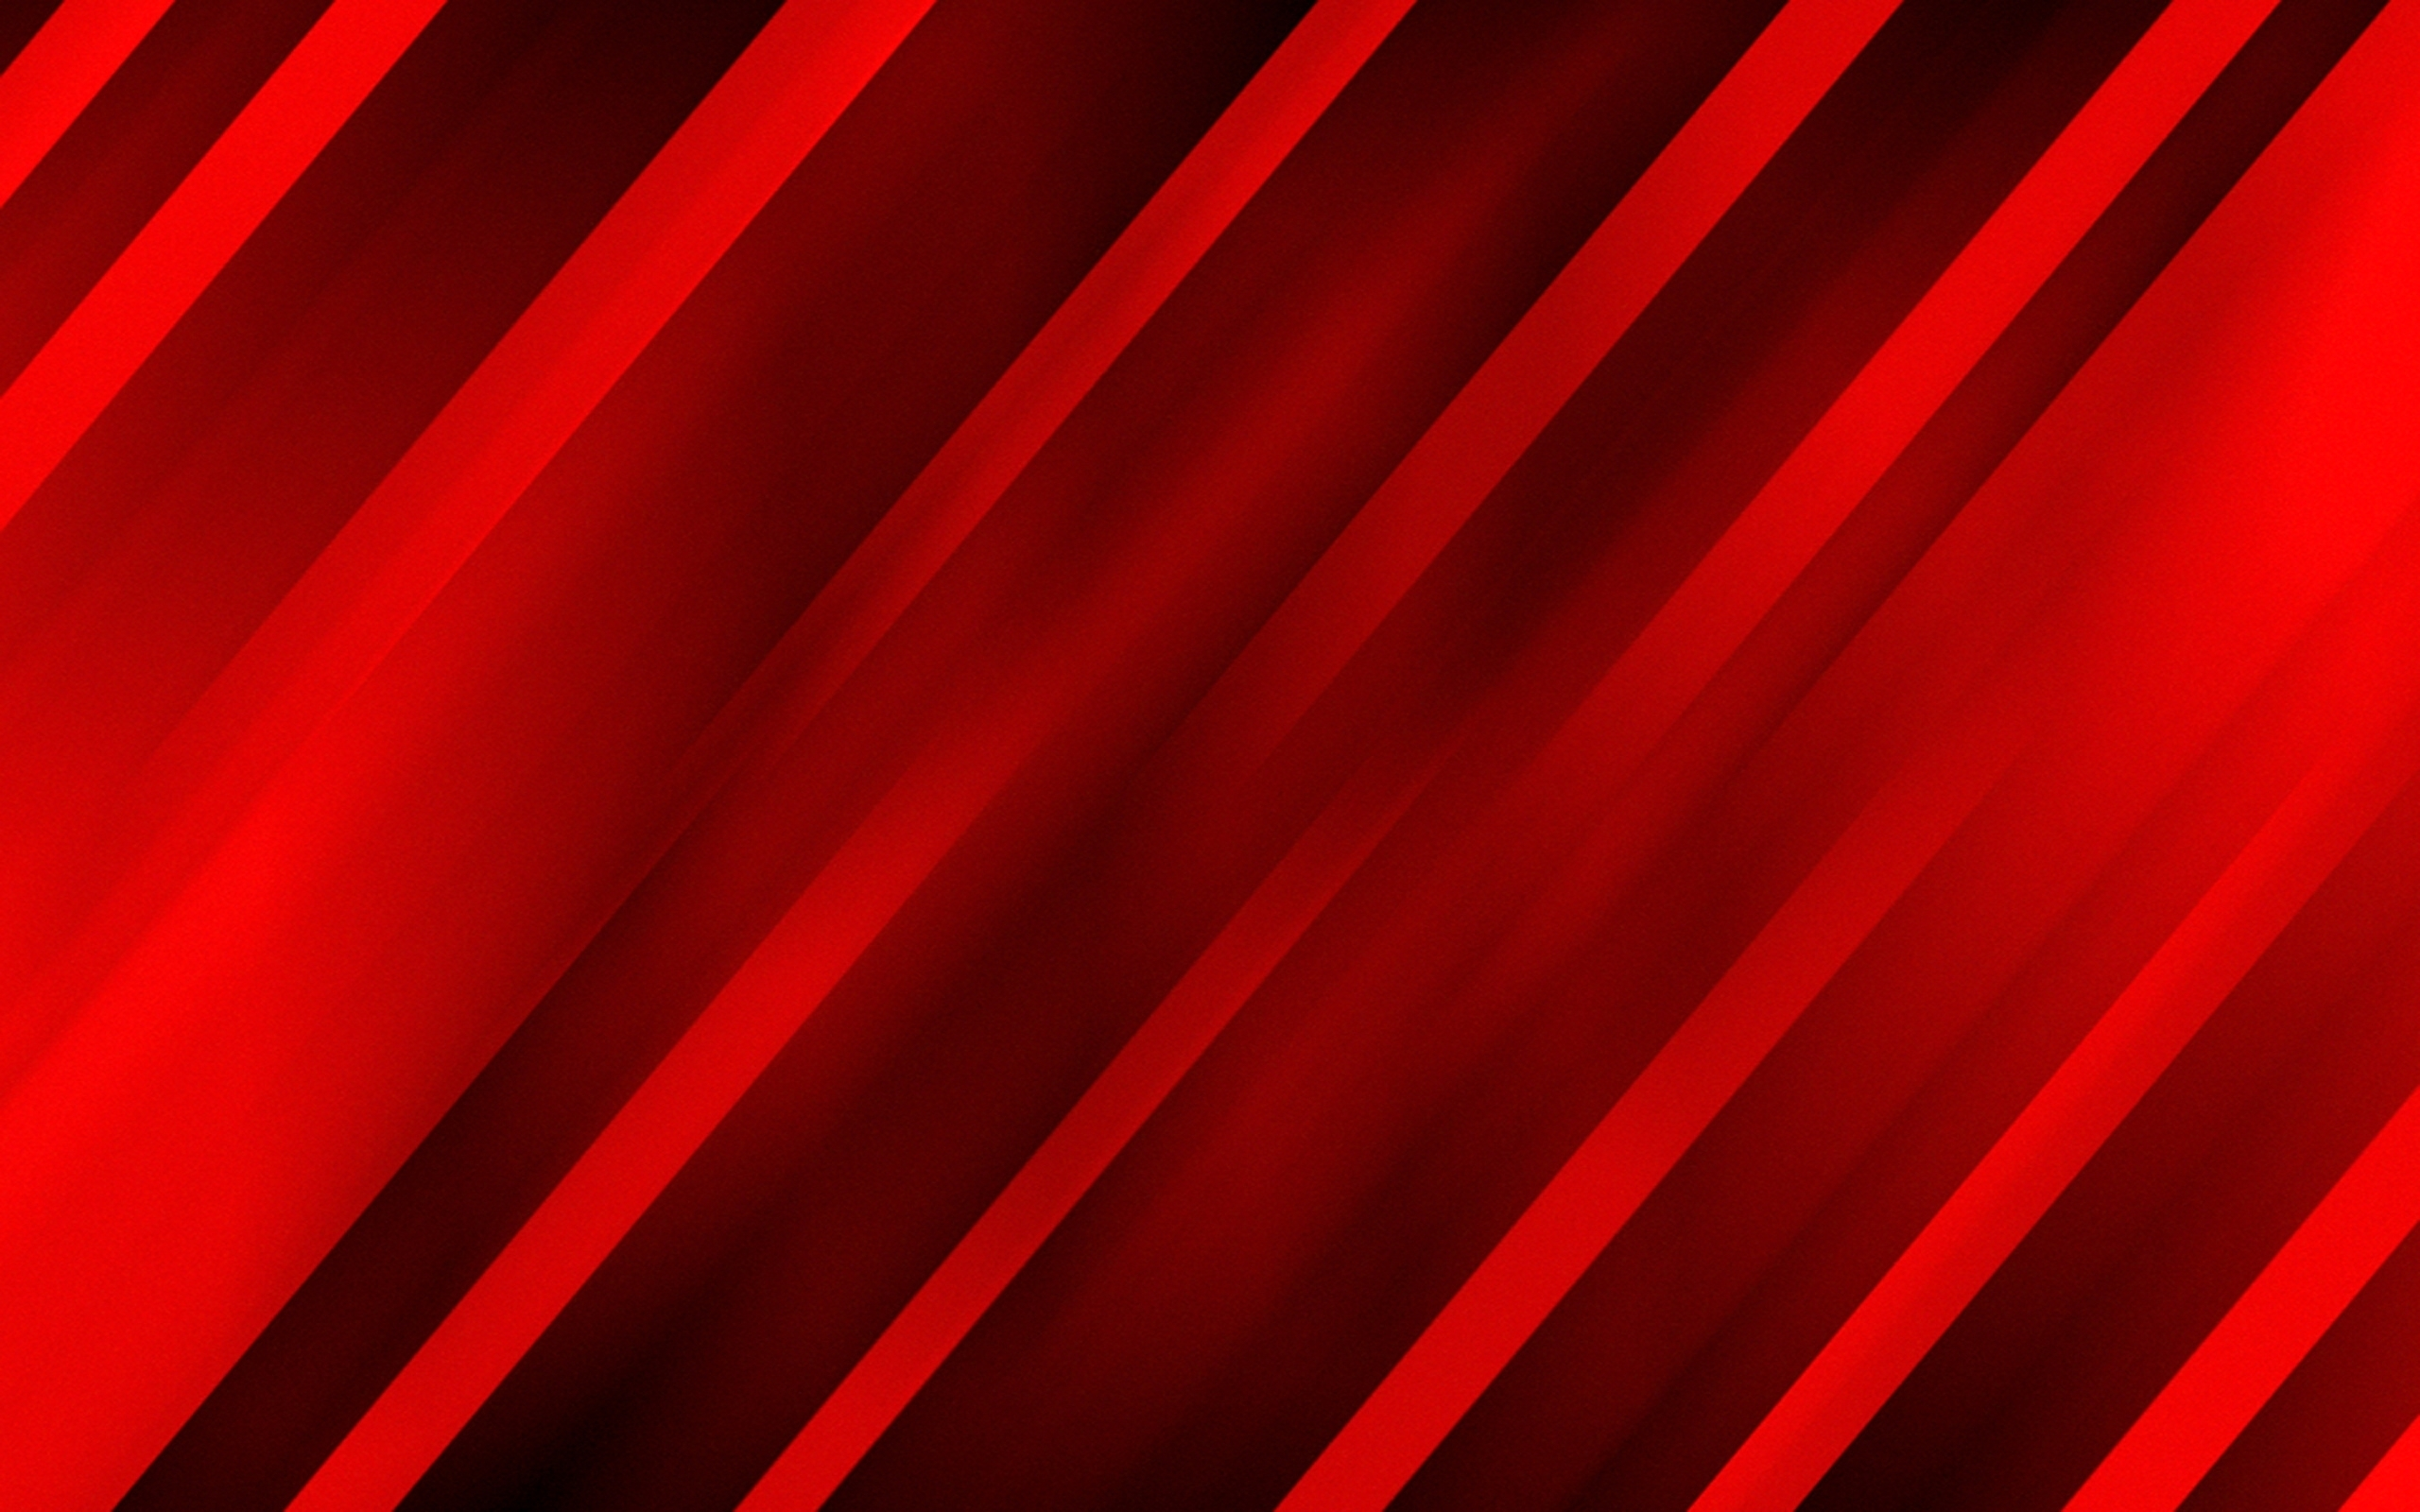 wallpaper background red linear - photo #10